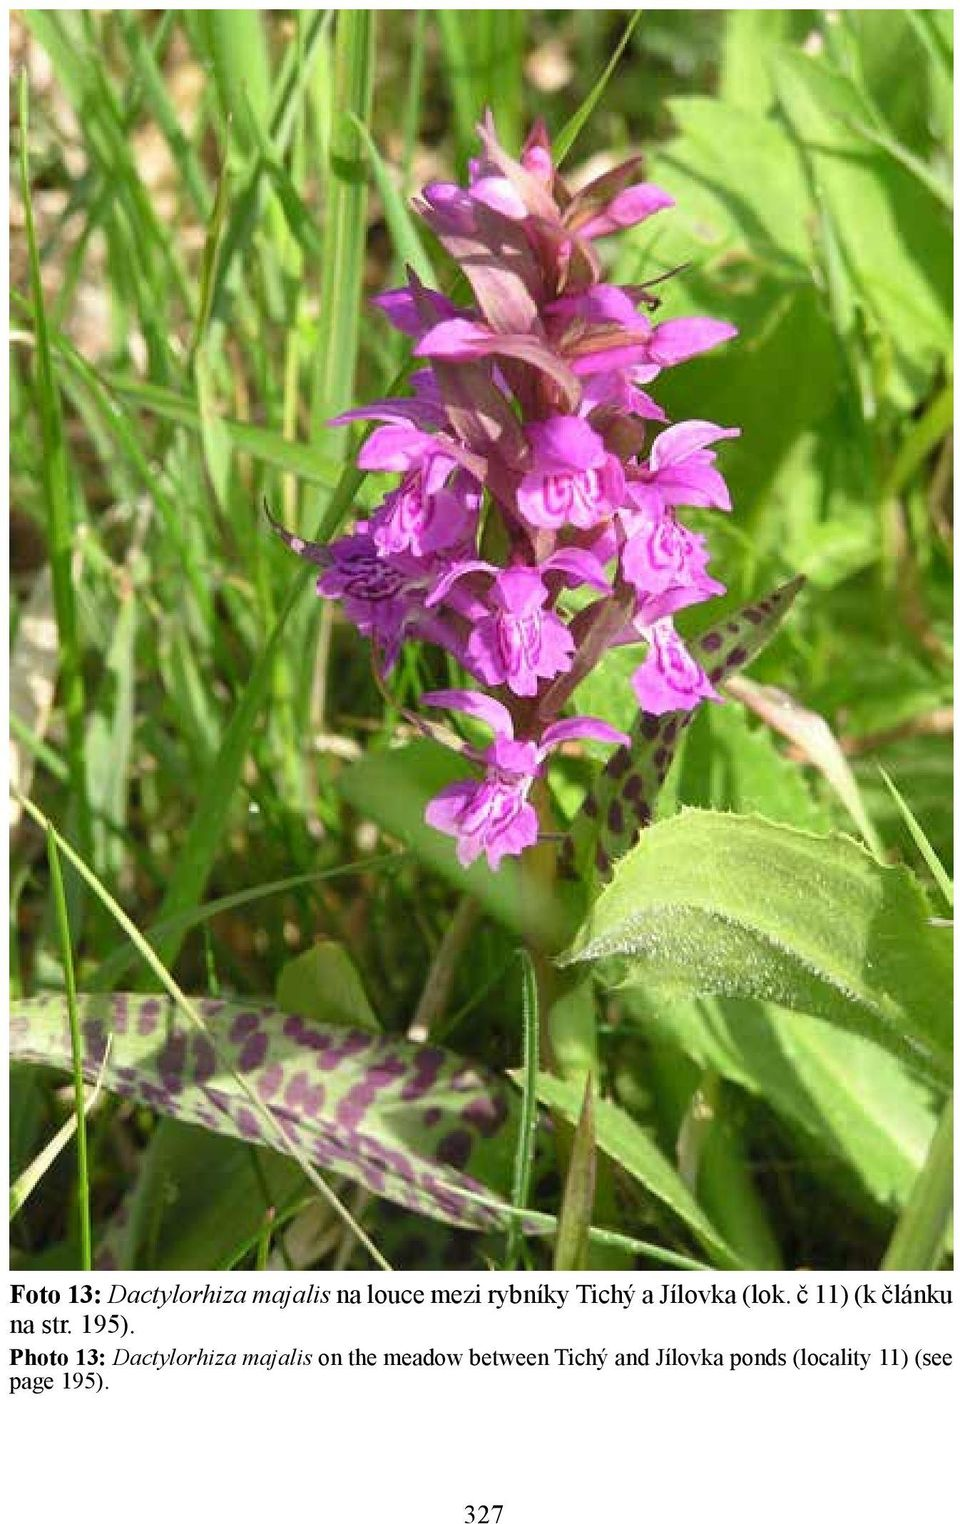 Photo 13: Dactylorhiza majalis on the meadow between